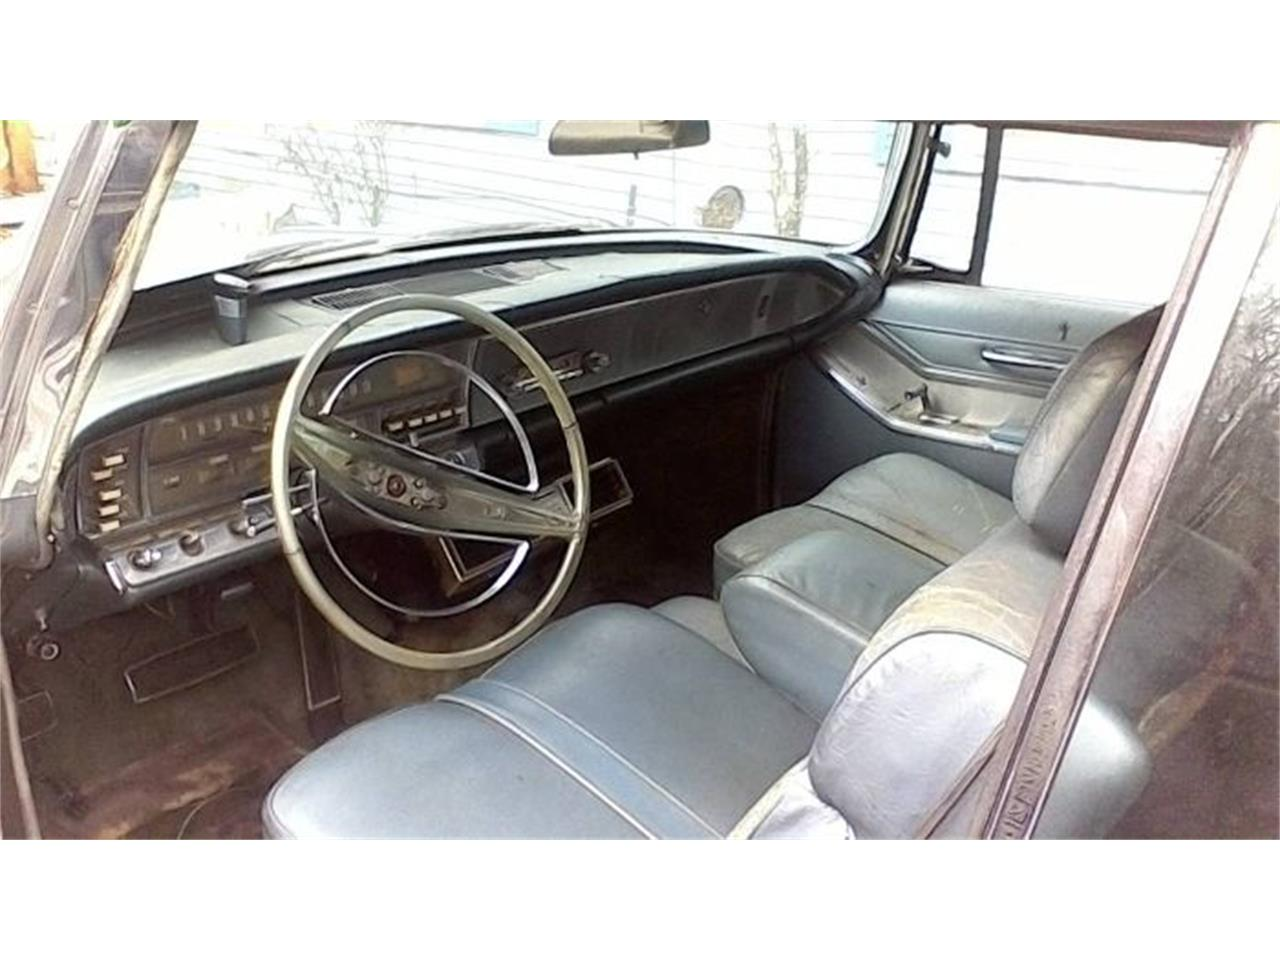 1964 Chrysler Imperial for sale in Cadillac, MI – photo 13